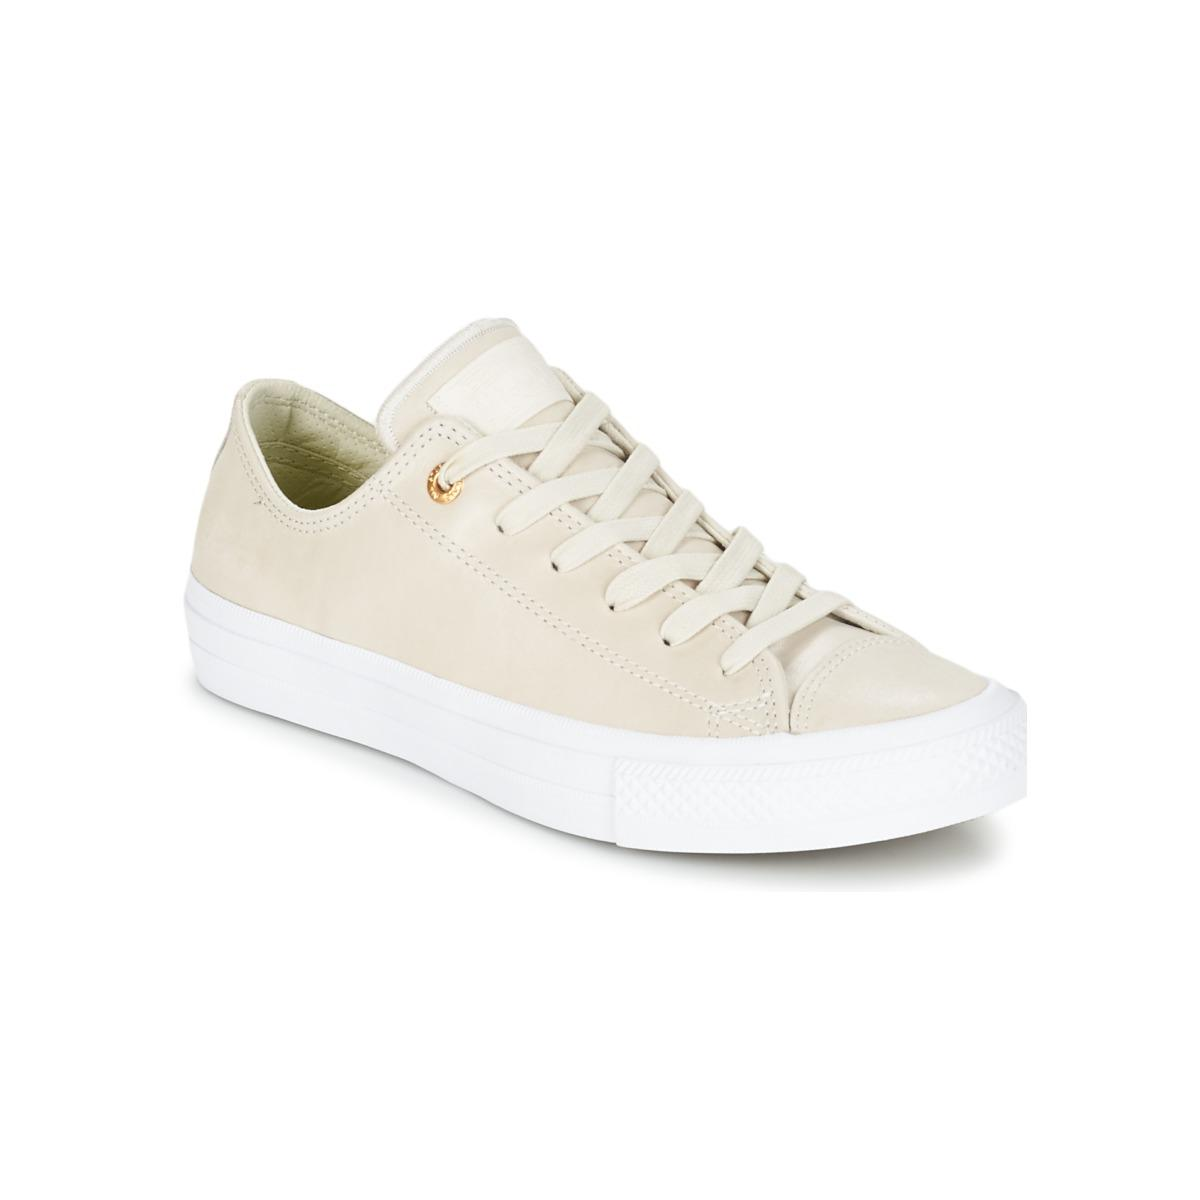 f70383781d63 Gallery. Previously sold at  rubbersole.co.uk · Women s Converse Chuck  Taylor ...